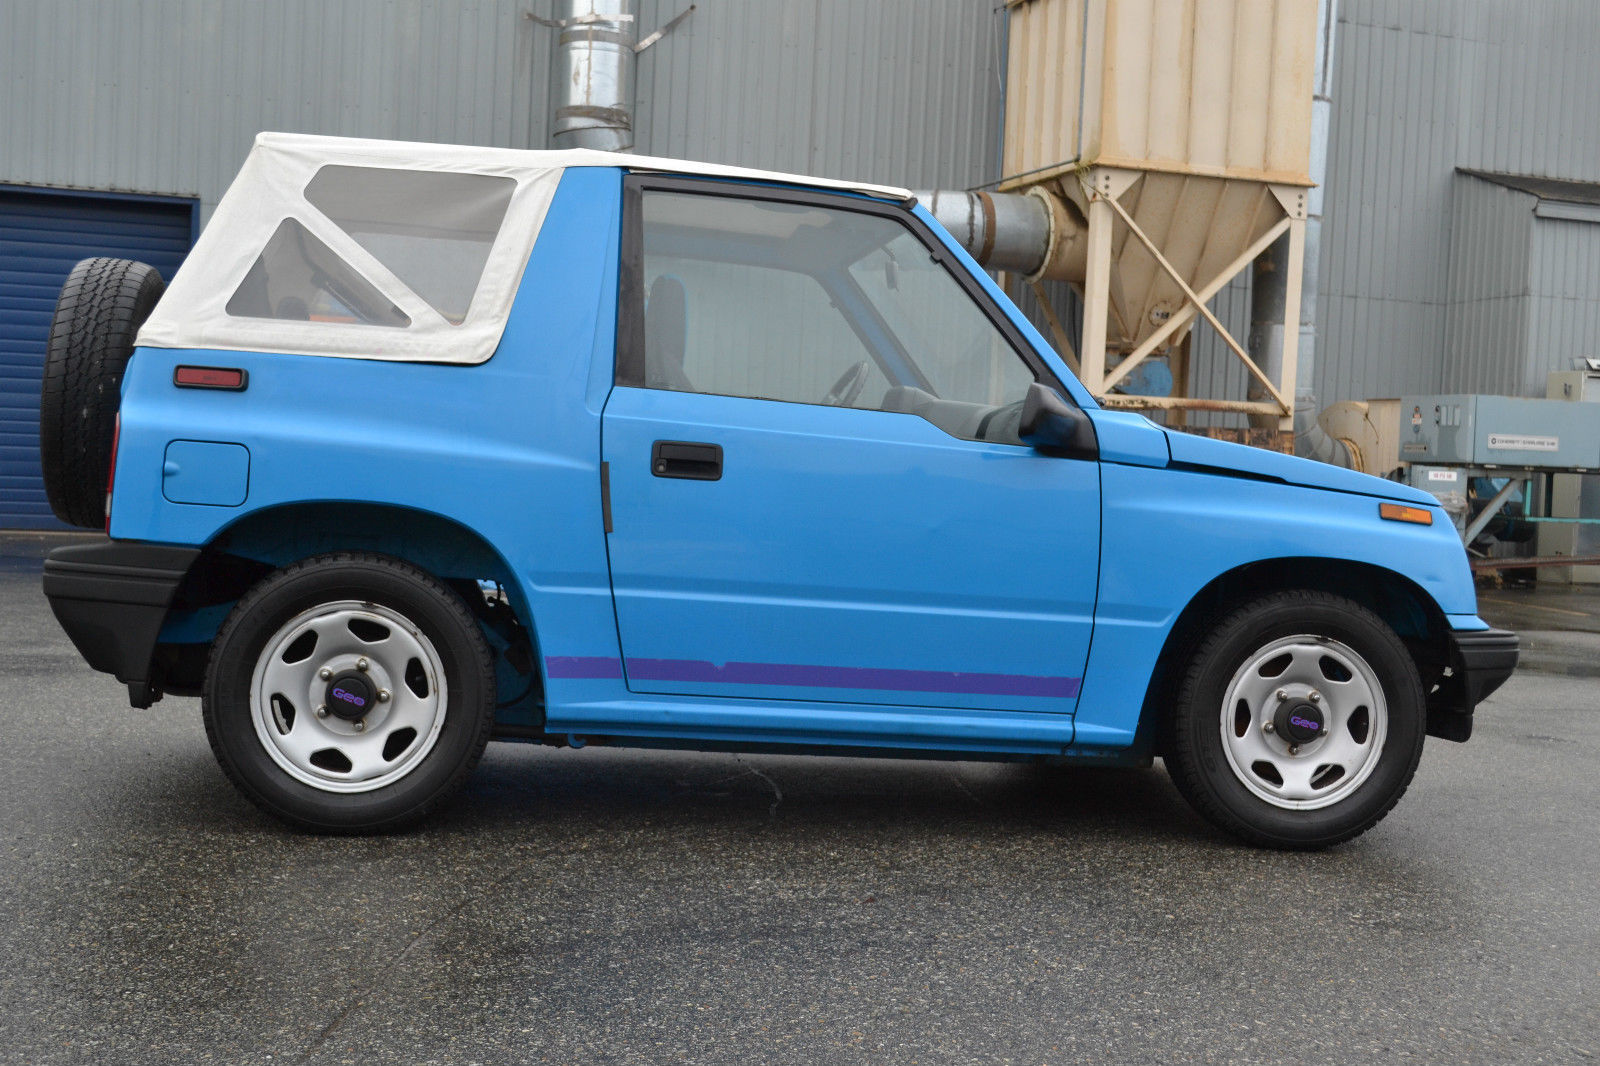 1991 tracker convertible manual 5 speed like sidekick